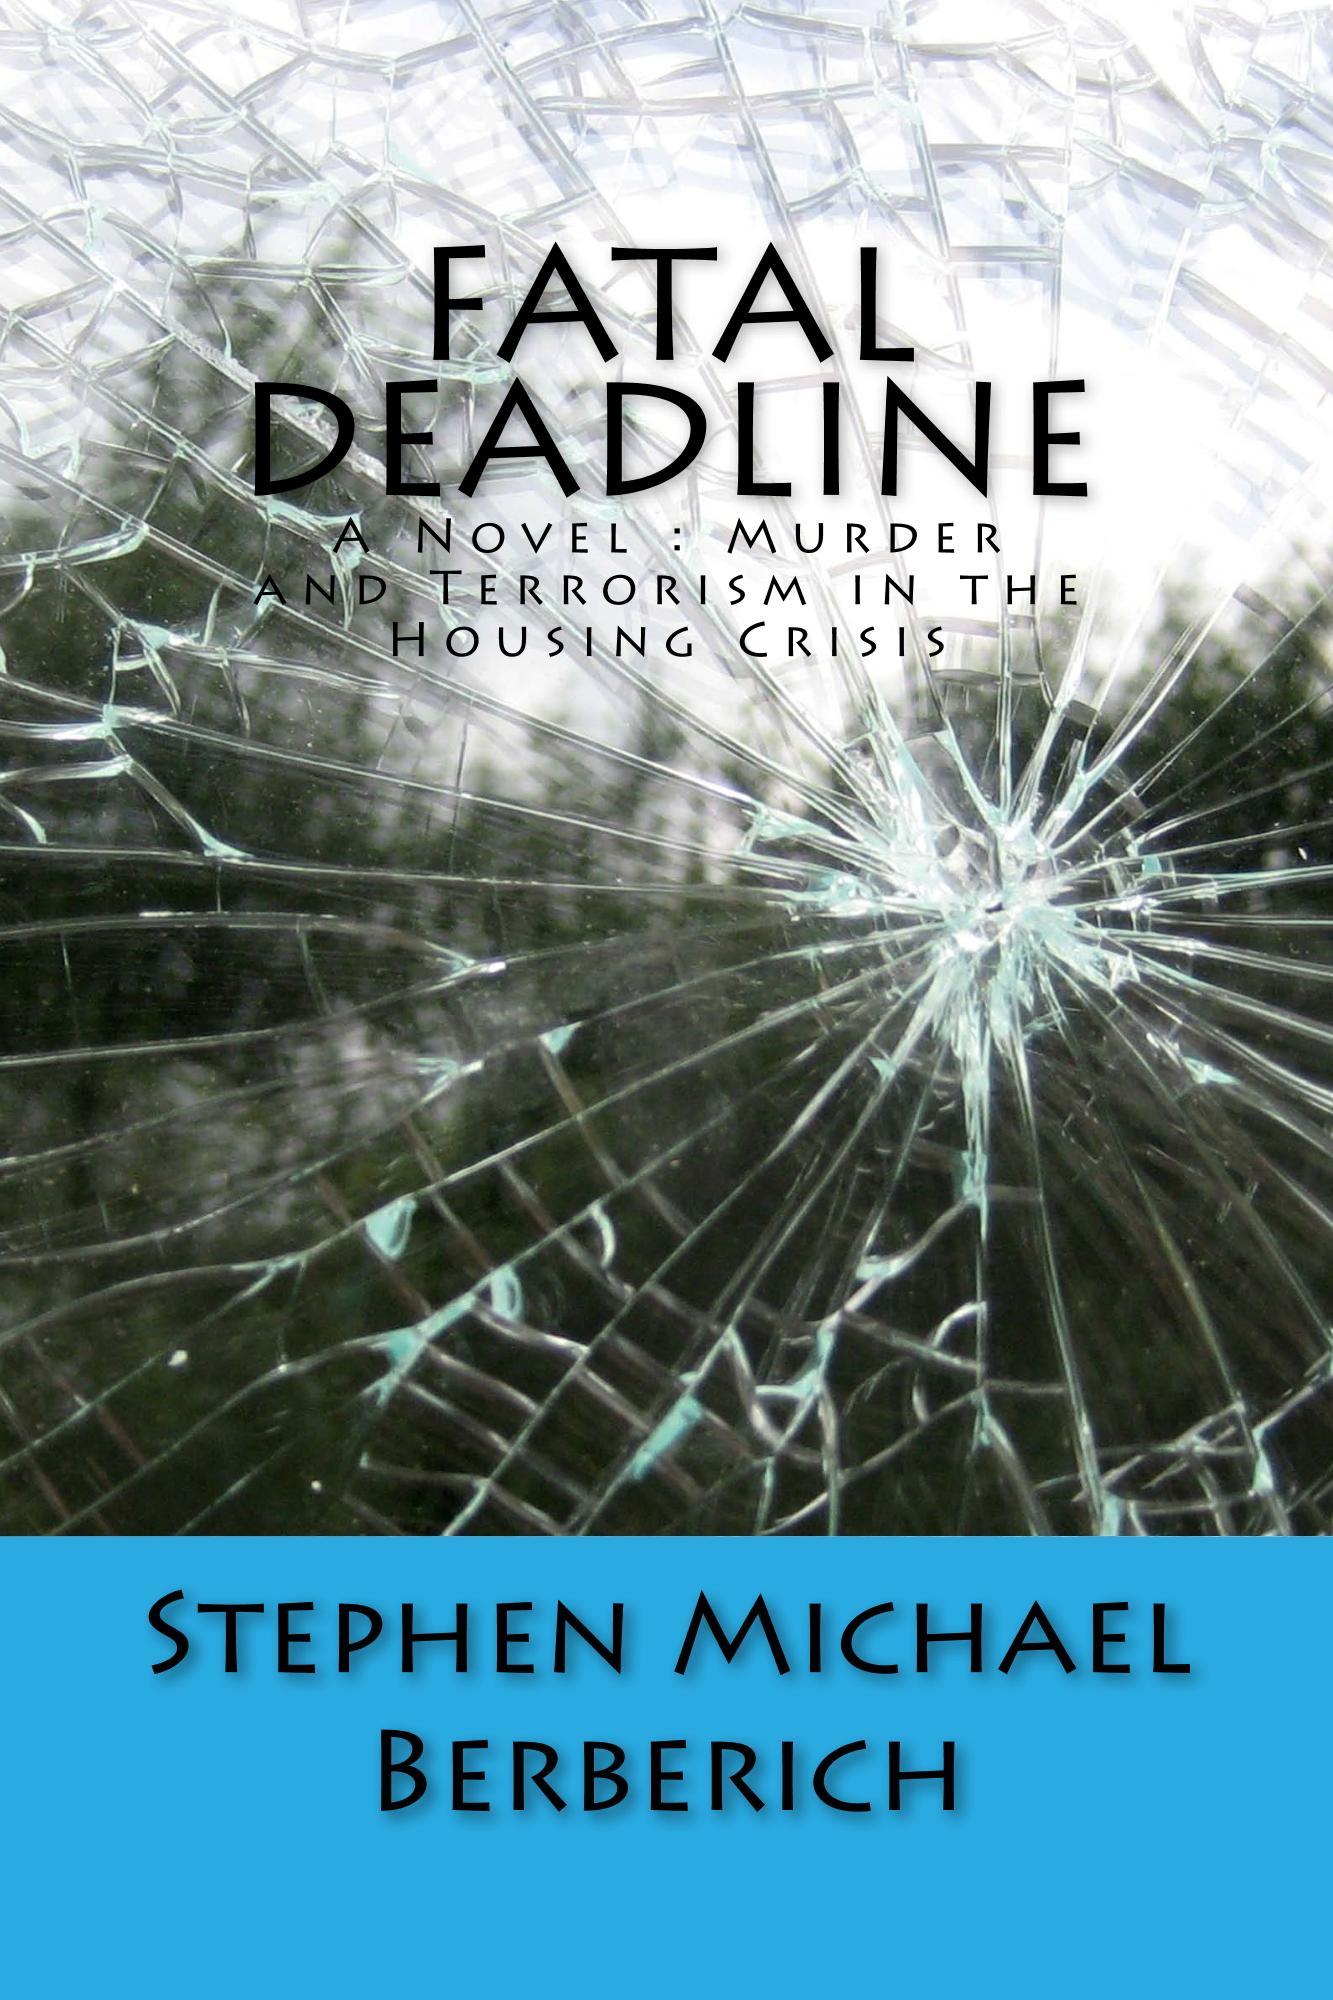 Fatal Deadline is told through the eyes and ears of an understaffed small weekly, which breaks a story of terrible consequences.